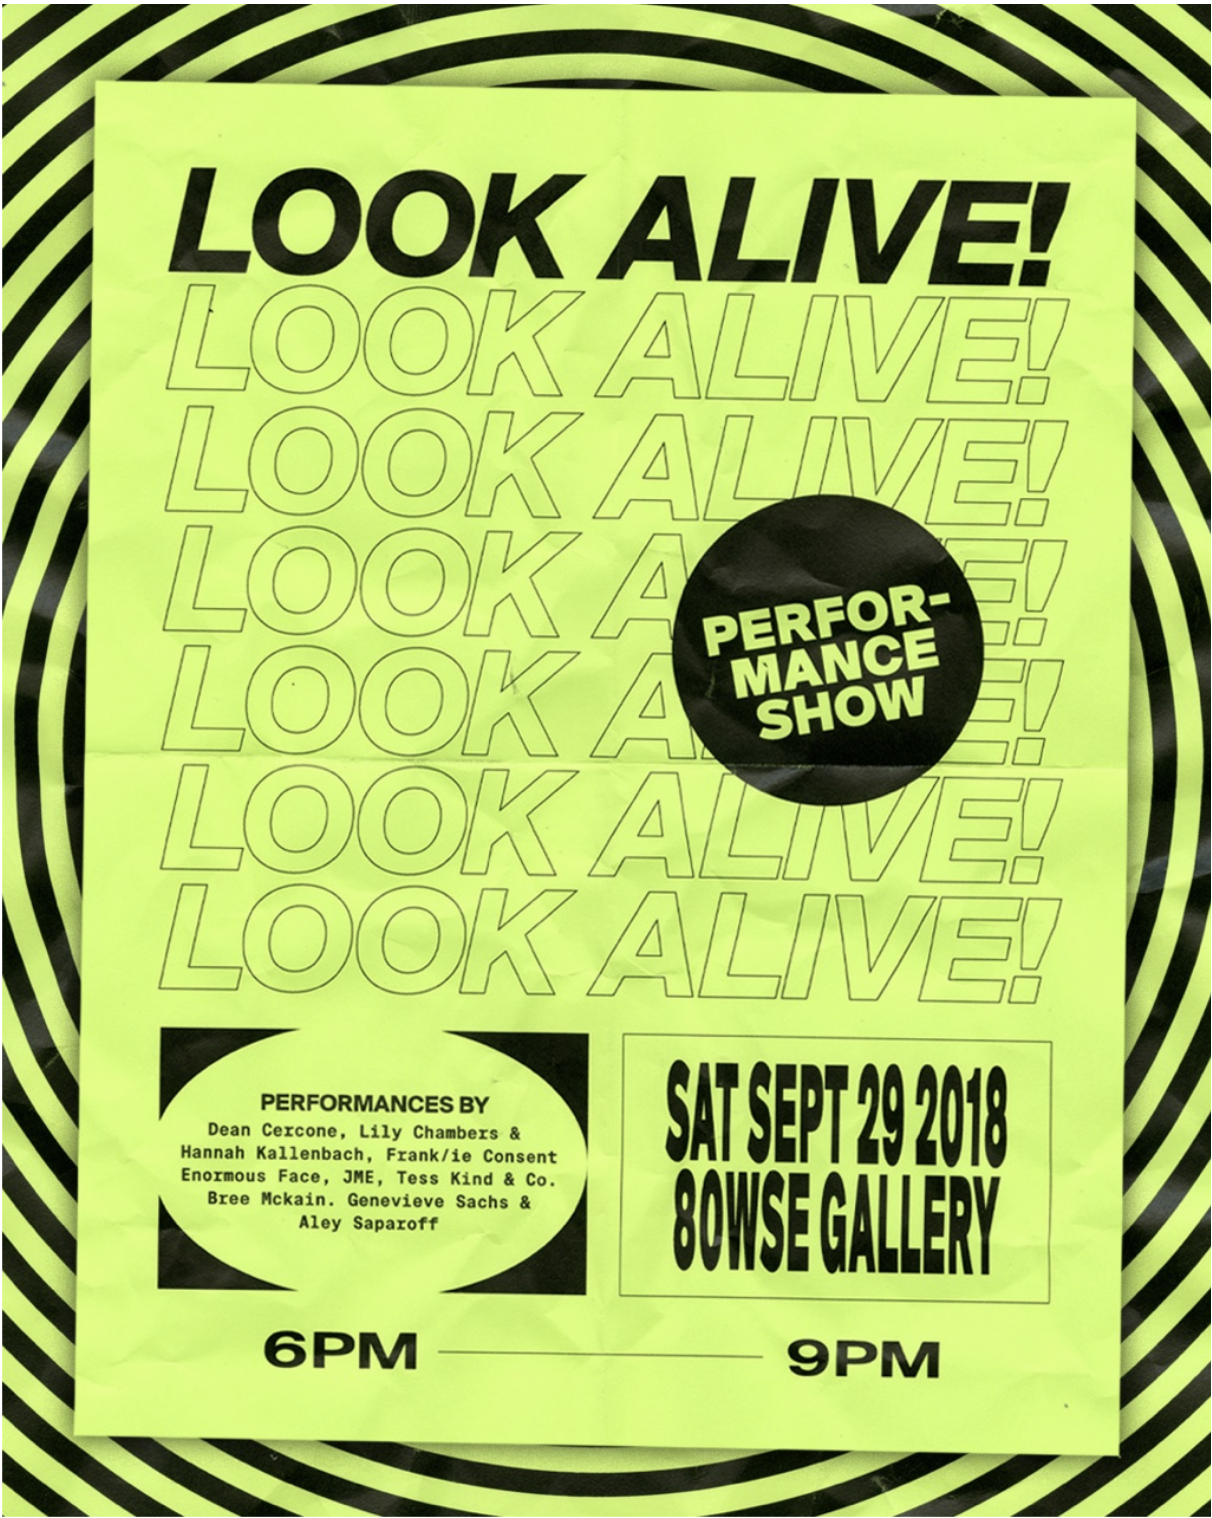 Look Alive! Poster by Christina Nahas.